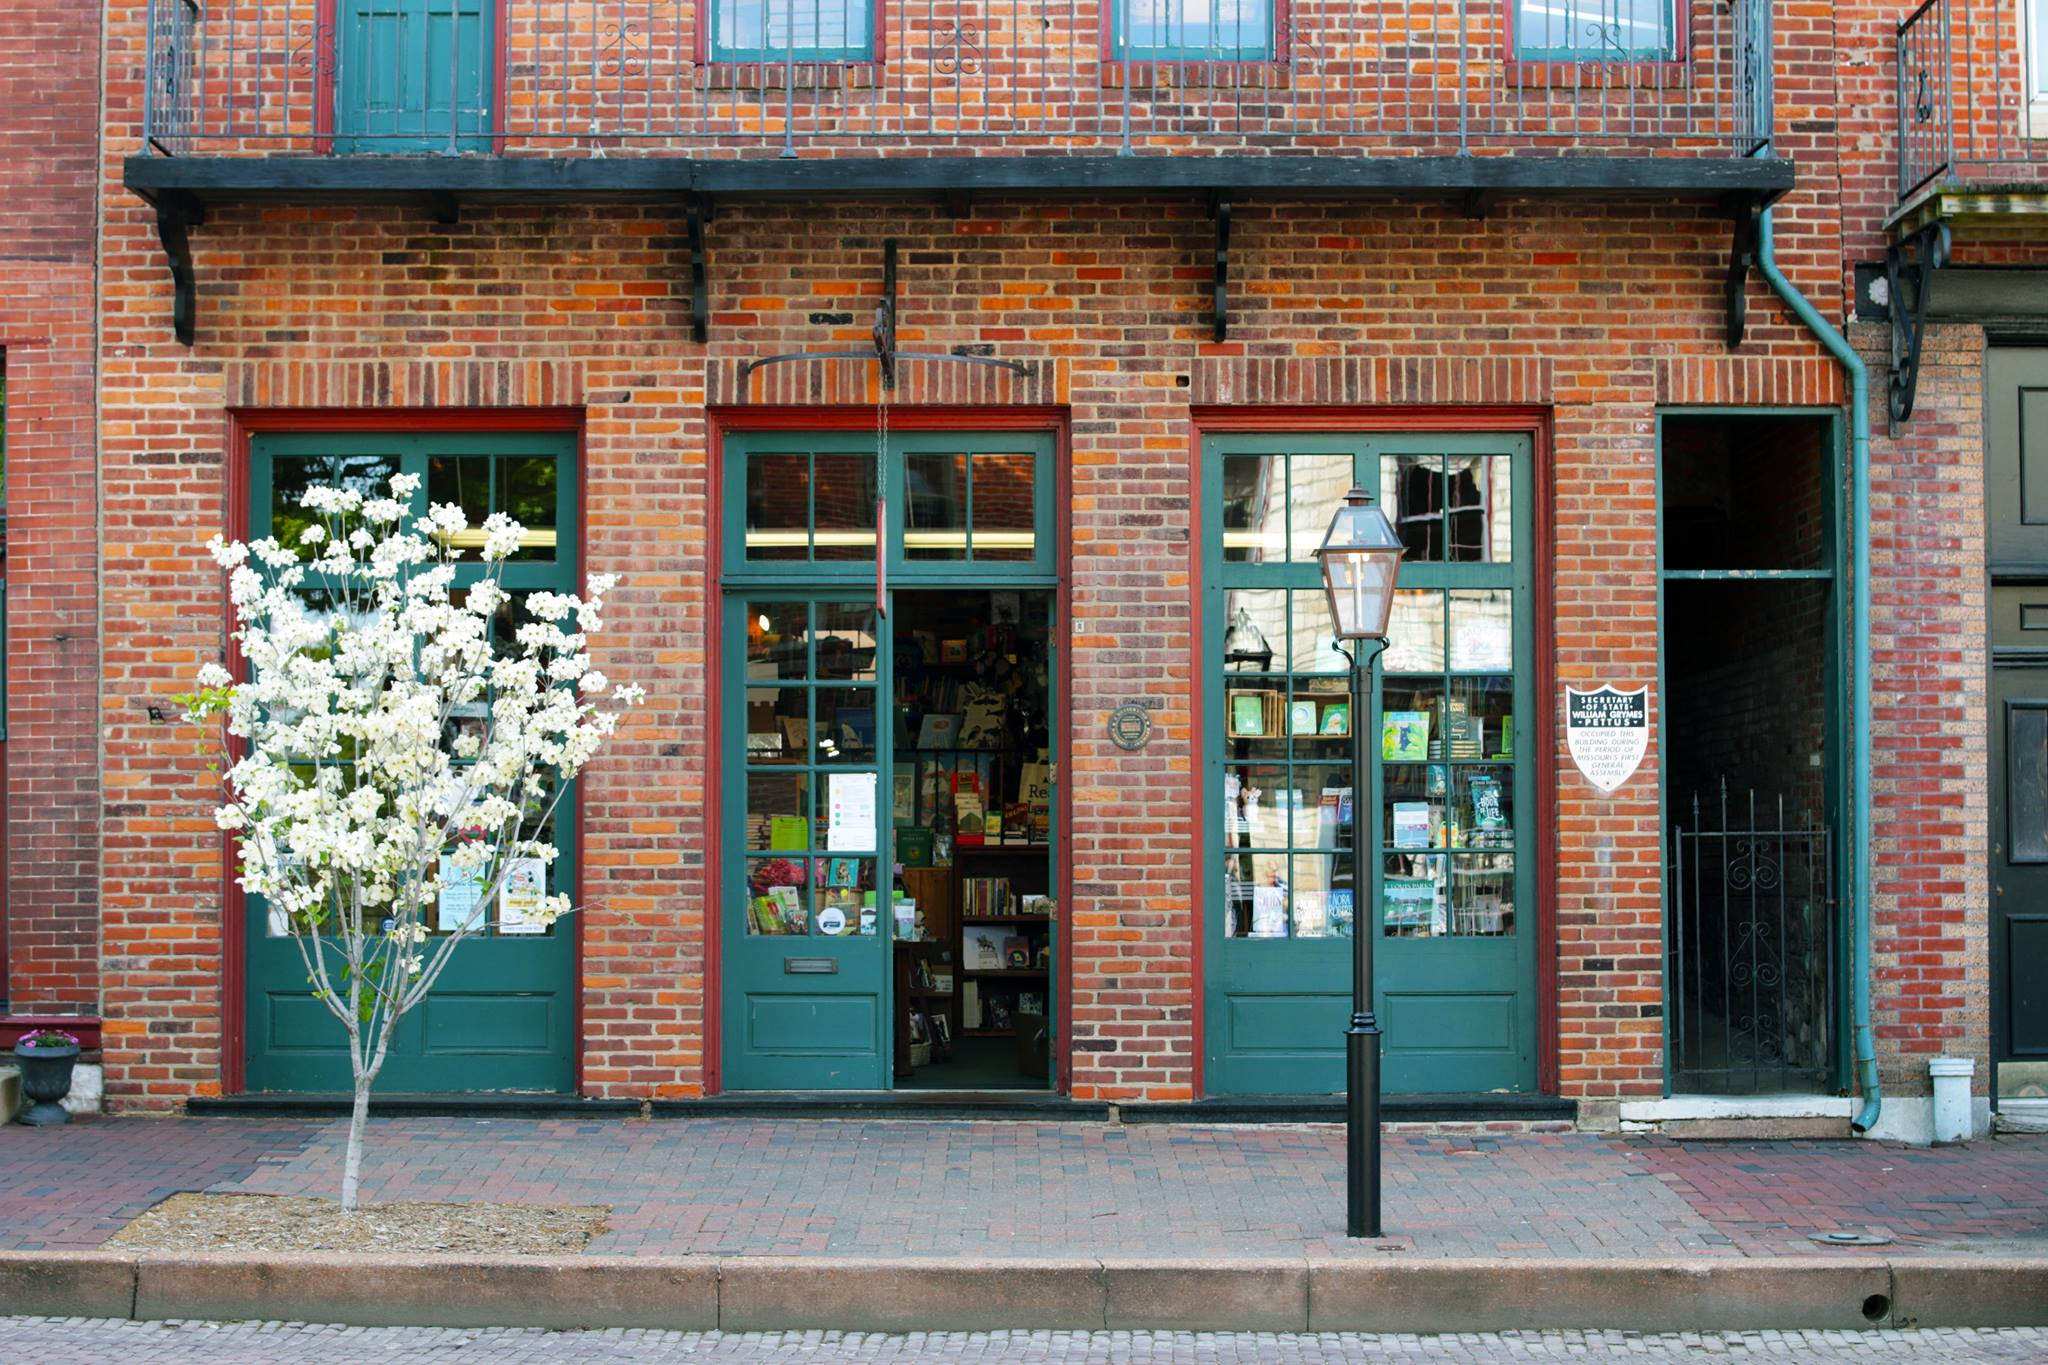 New Year, New City: 5 St. Louis Bookstores to Visit in 2018 - 4) Main Street Books | Image from their Facebook page